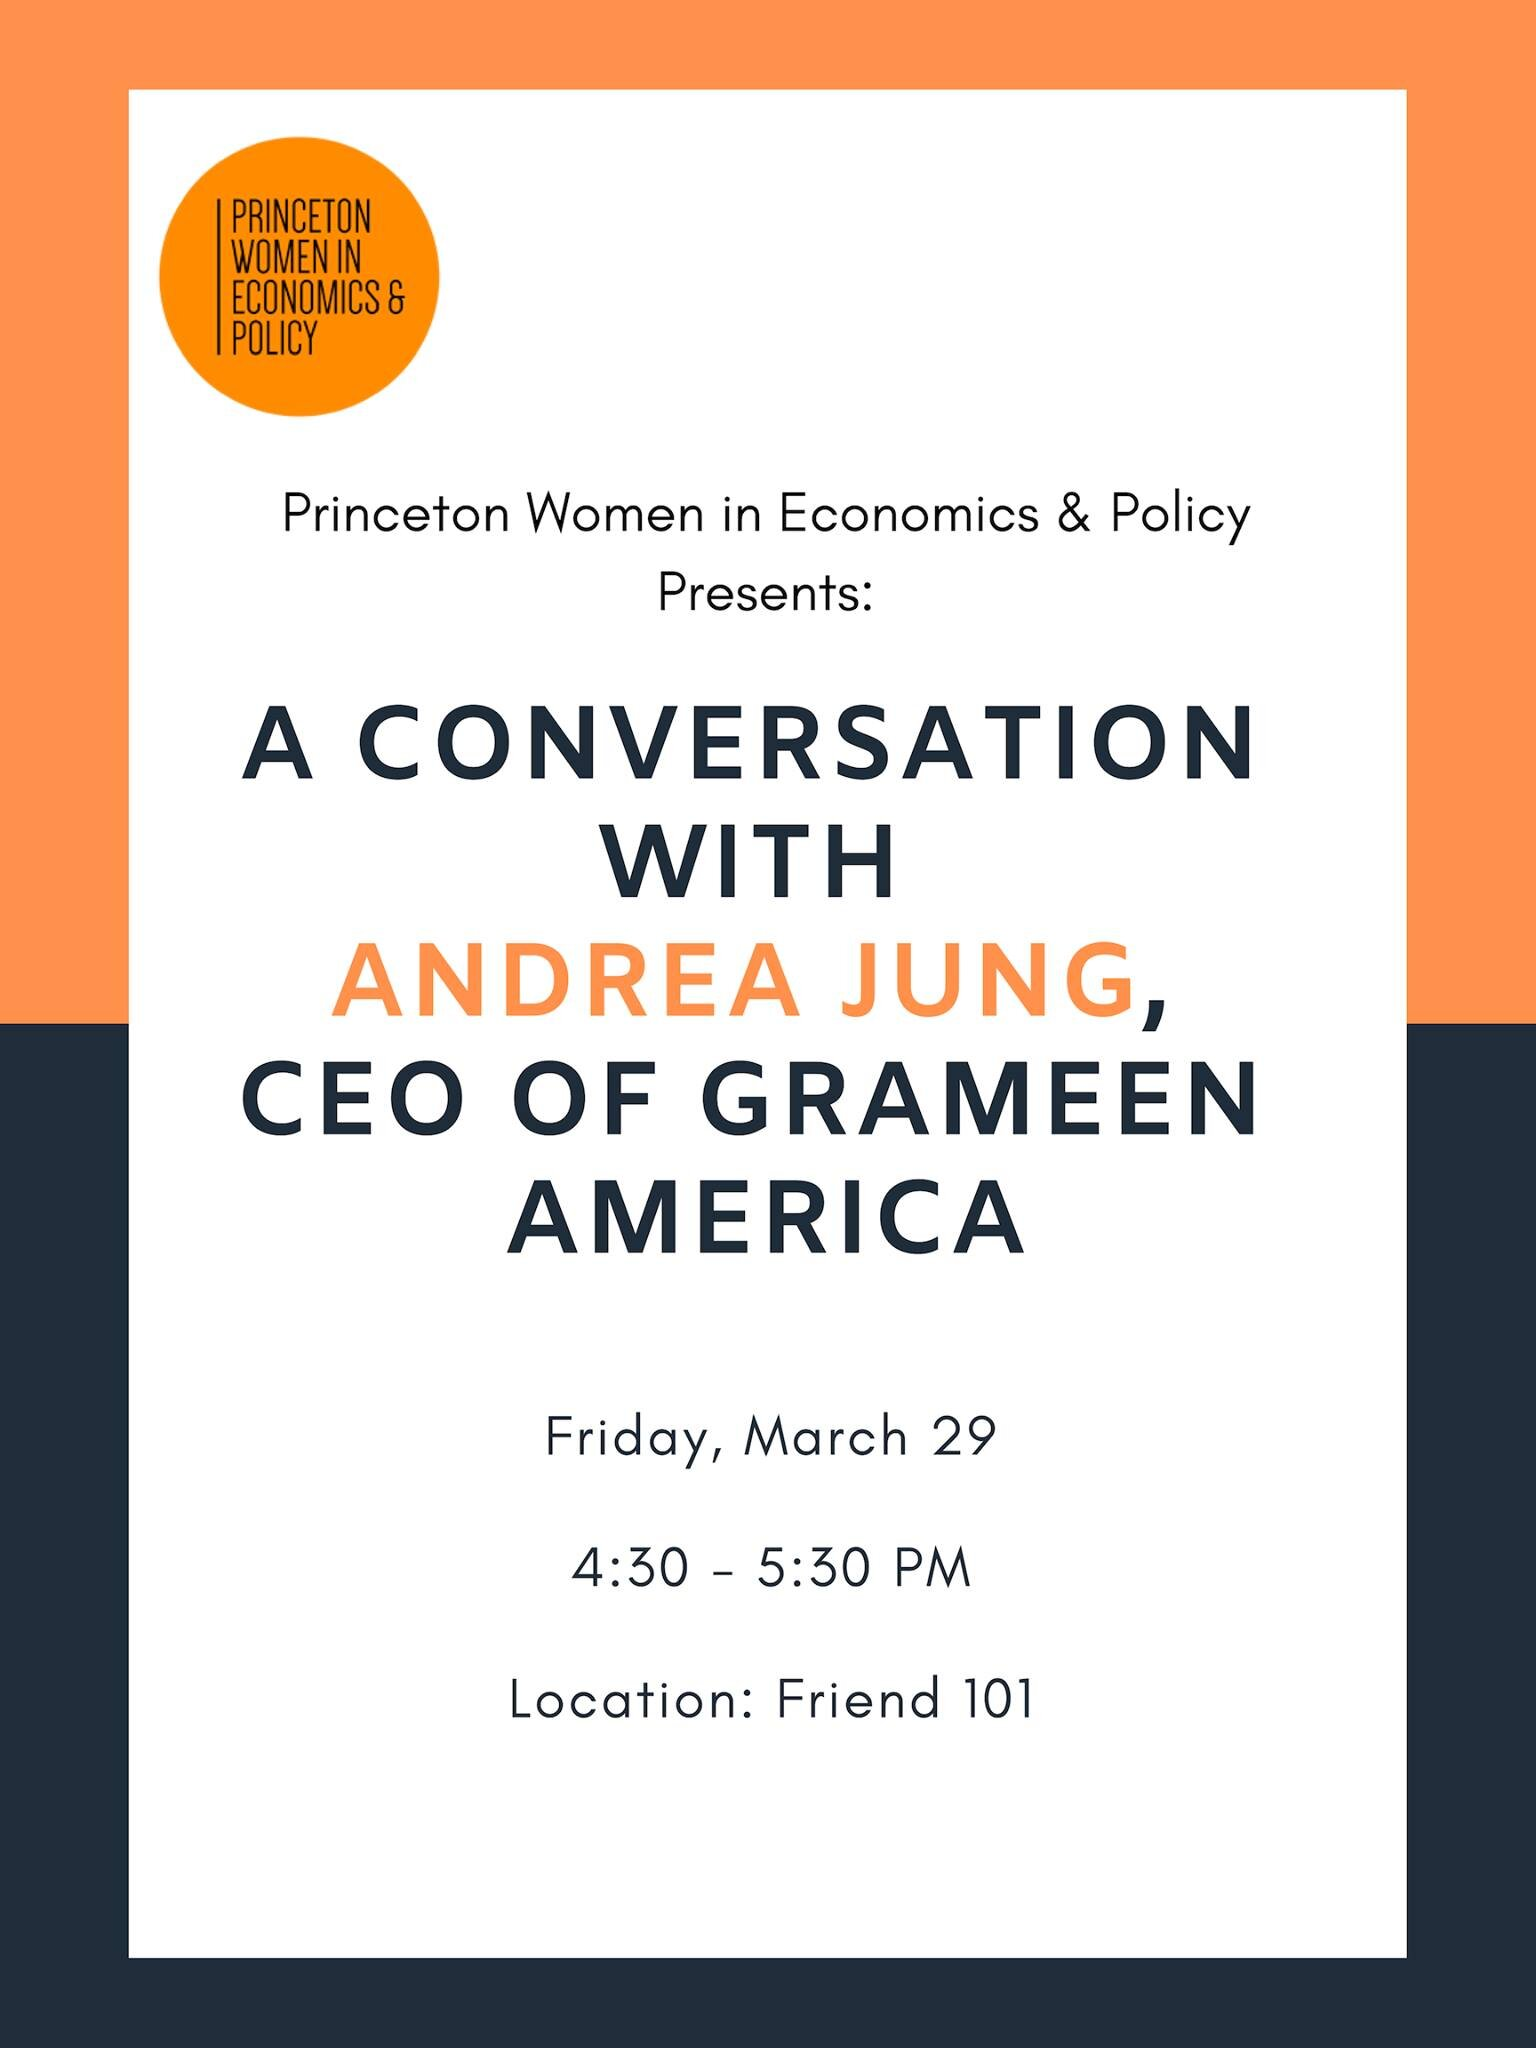 A Conversation with Andrea Jung - Come join us THIS FRIDAY (3/29/19) at 4:30PM in Friend 101 to hear Andrea Jung, CEO of Grameen America and Princeton alumna, talk about her life, career, and experiences.